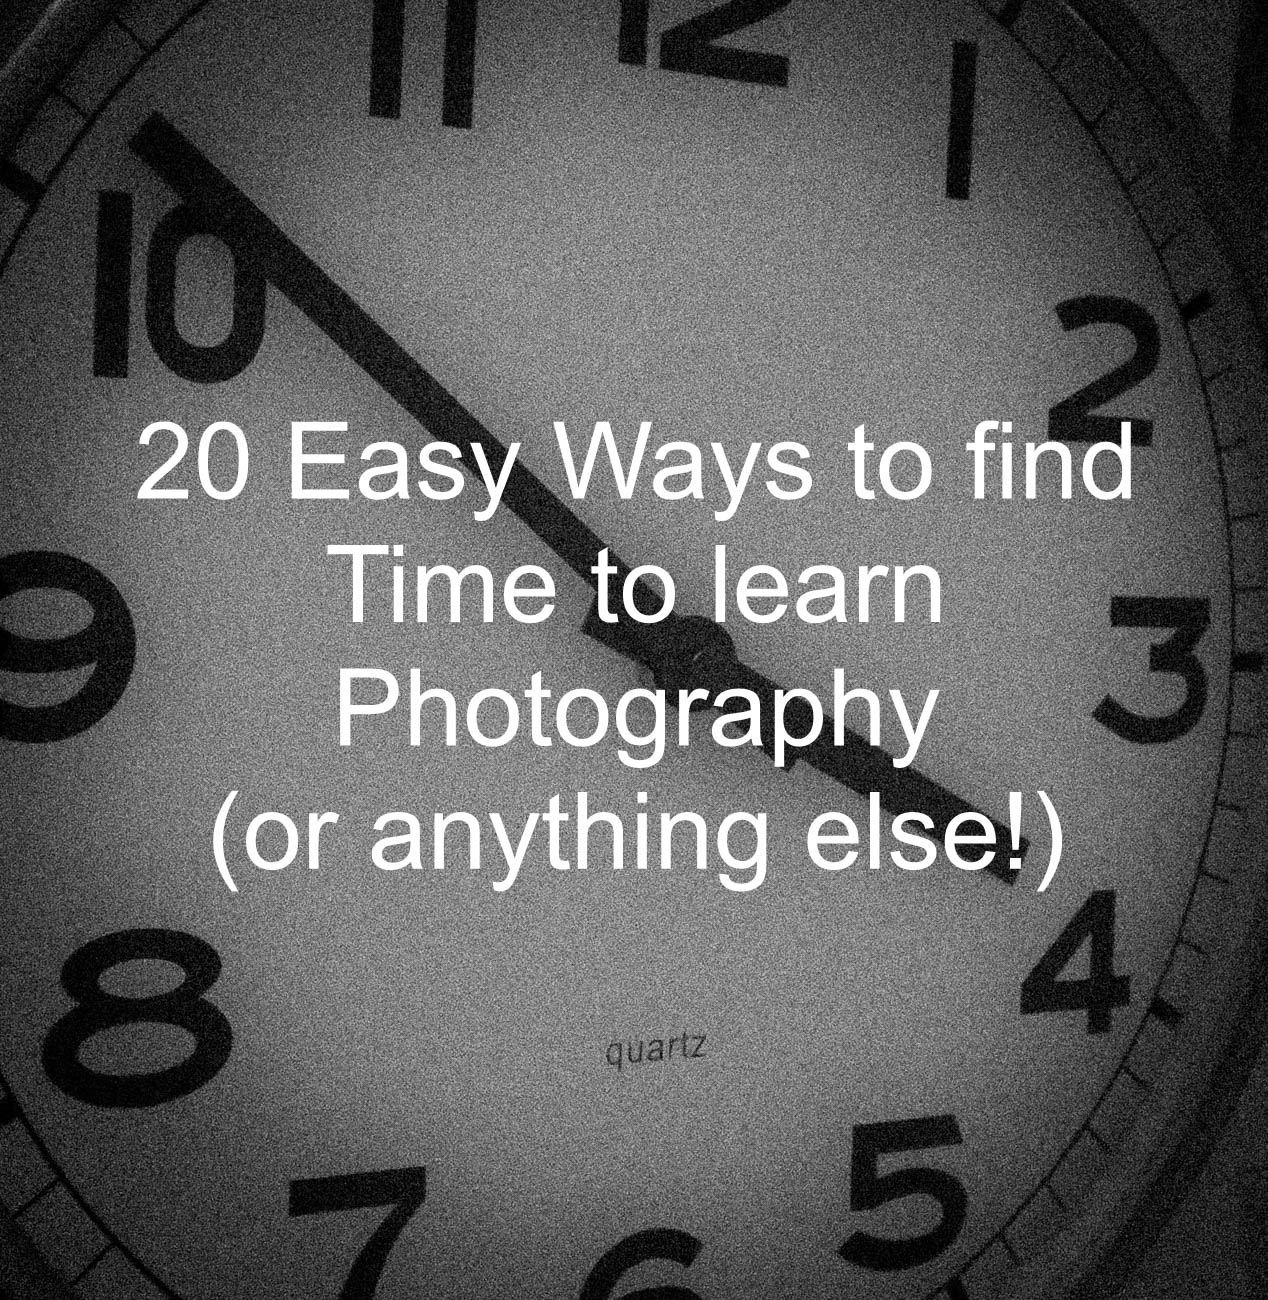 20 easy ways to find time to learn photography (or anythingelse!)